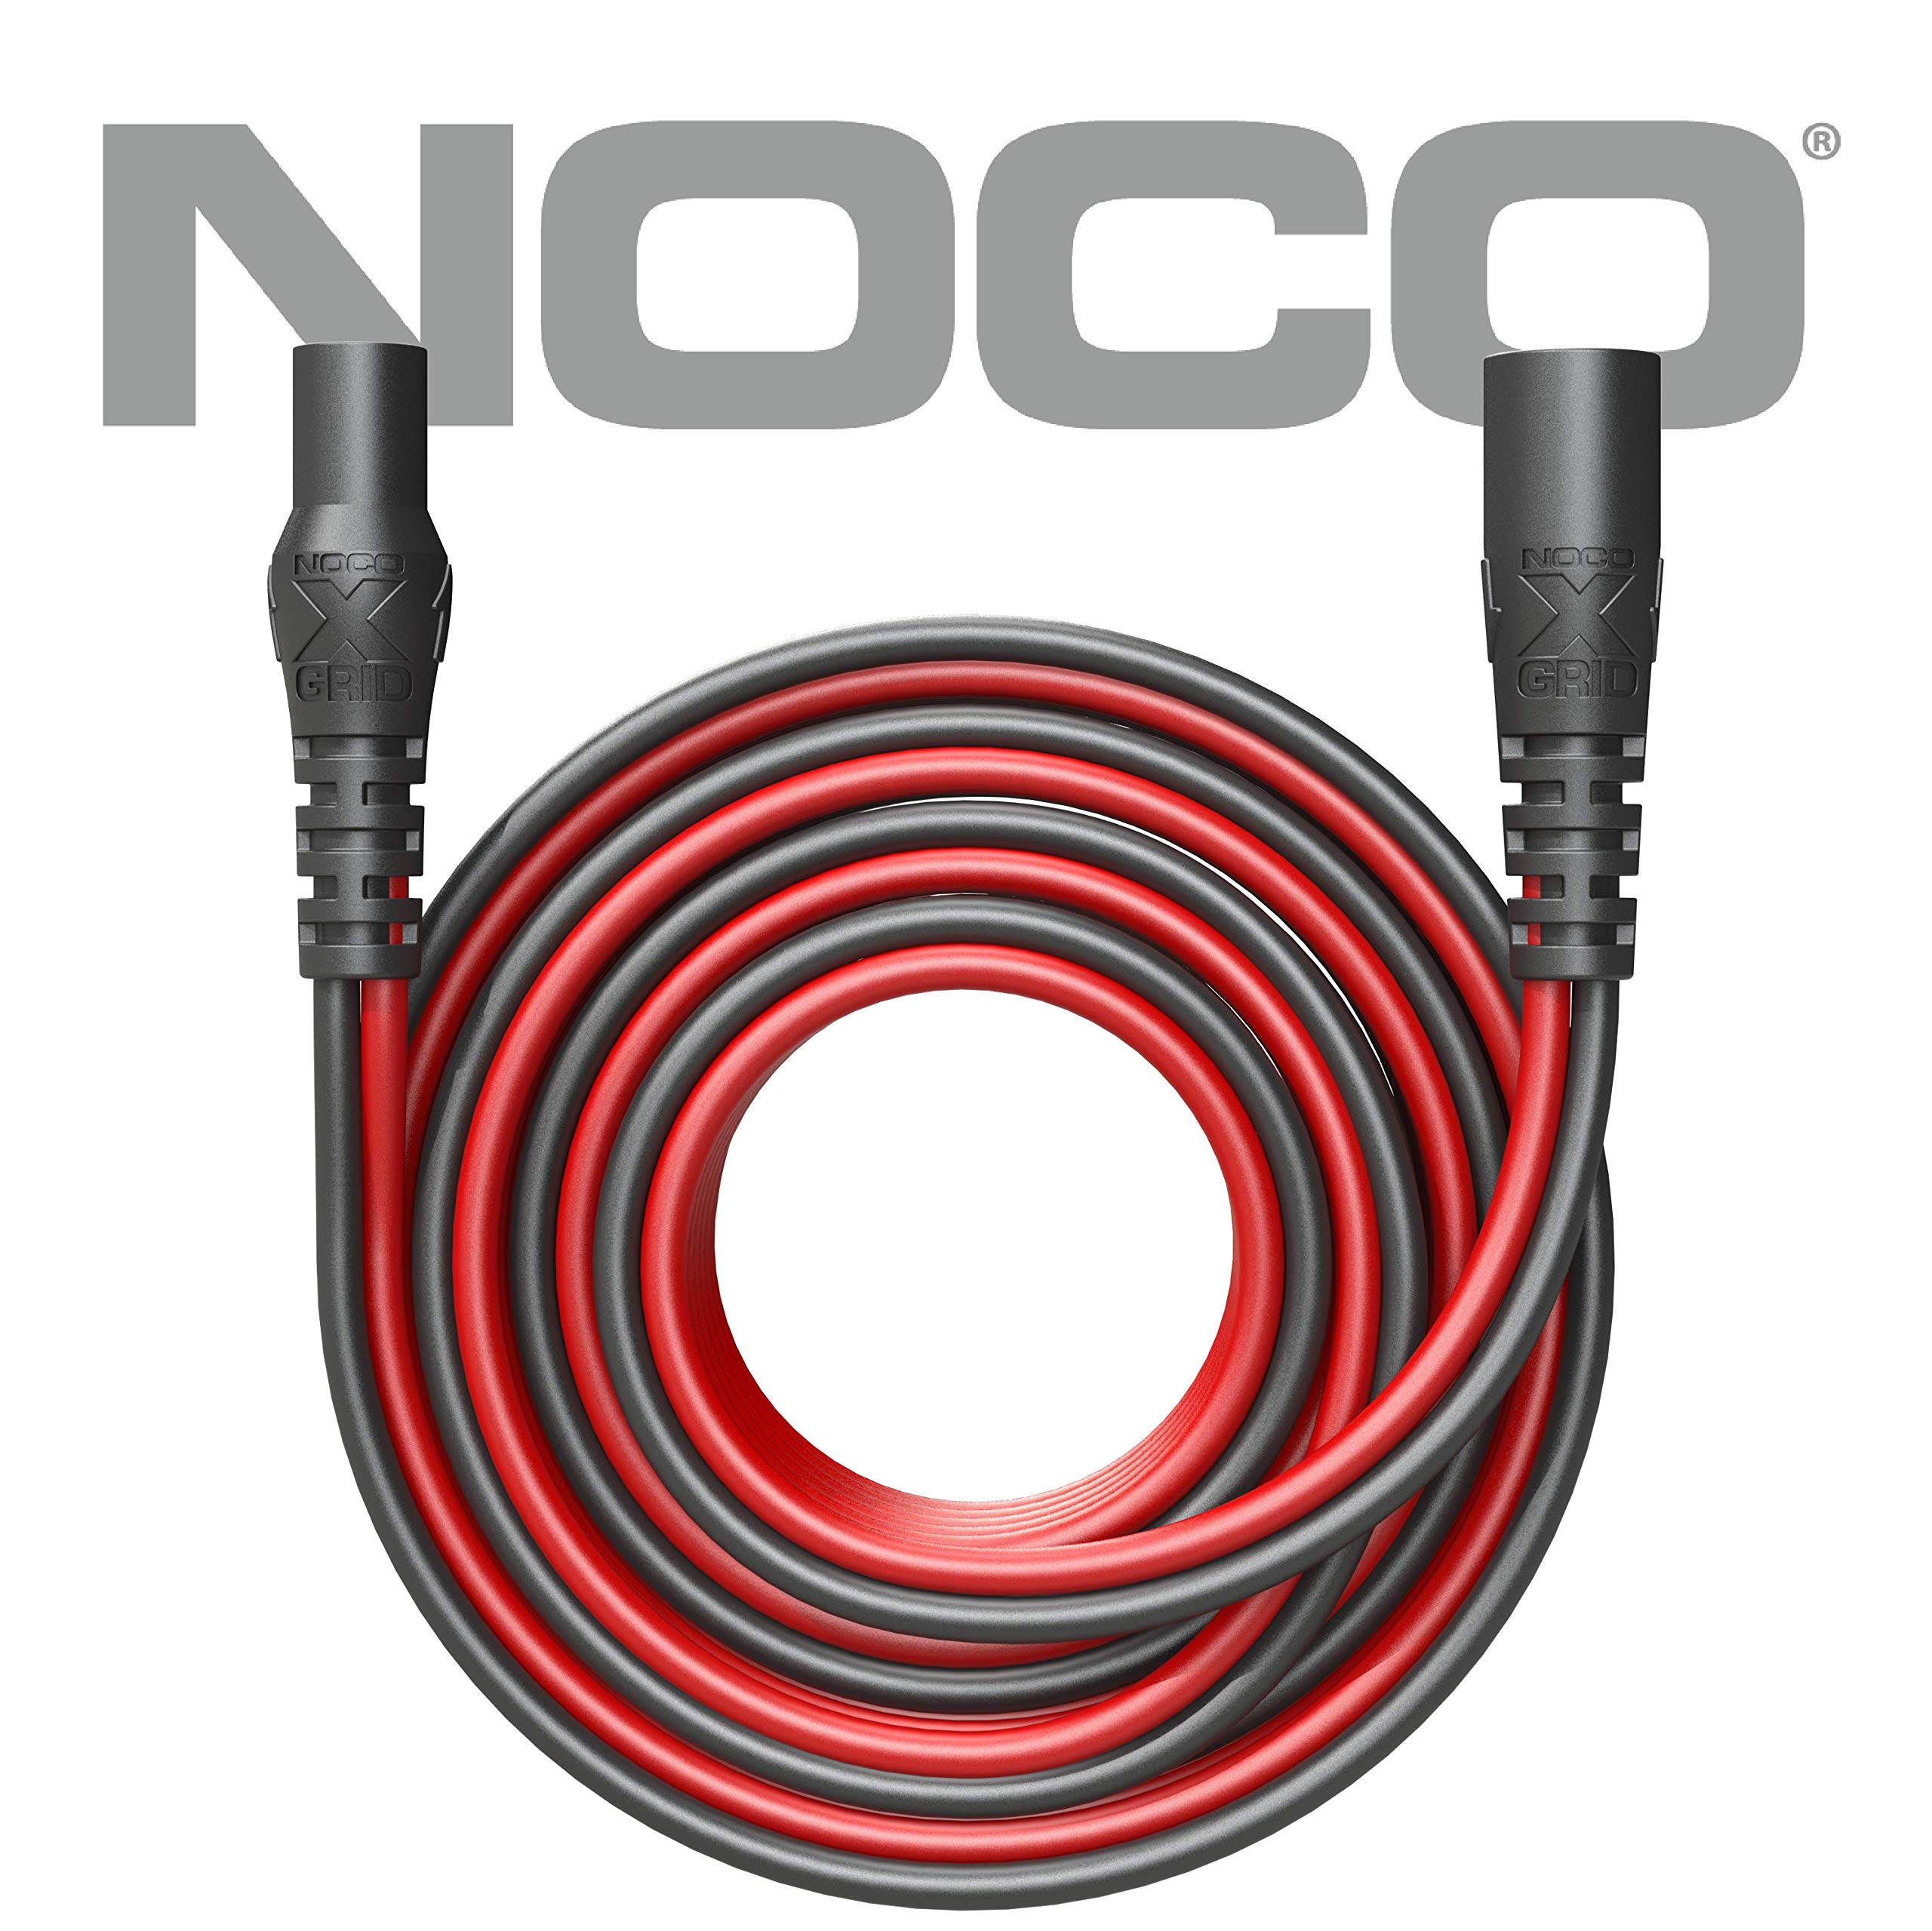 NOCO GC030 25-Foot XGC Extension Cable by NOCO